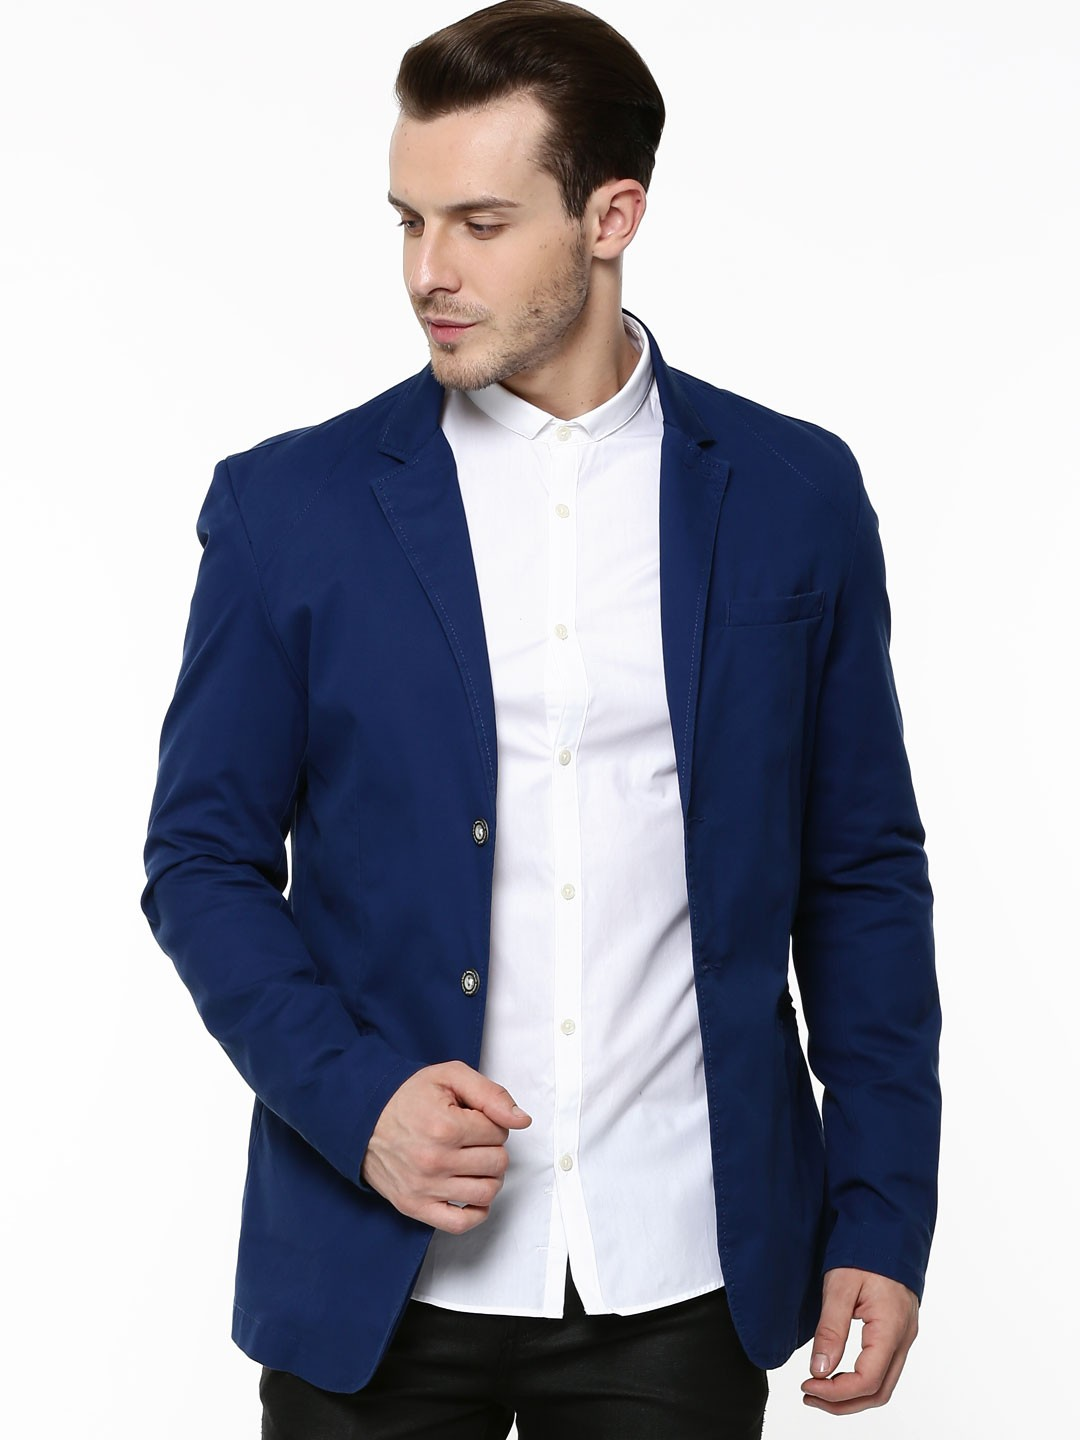 Buy blazers for men at best prices in India. Shop online for high discounts on blazers for men ranging from minimum 9% to 79% OFF.